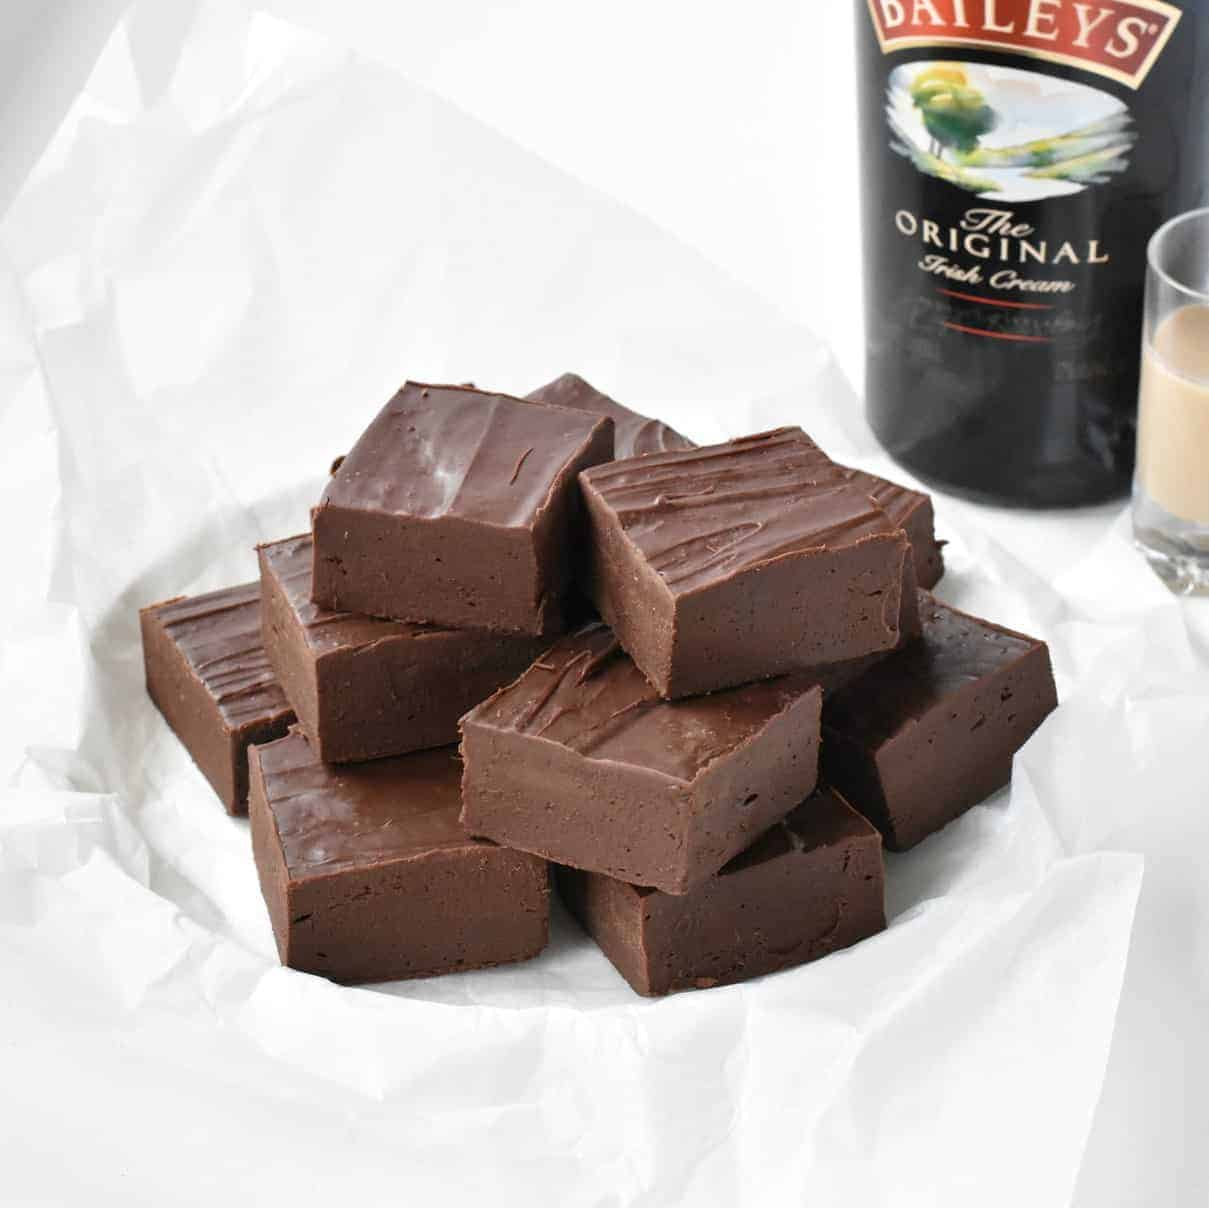 Squares of Baileys Fudge on a plate.